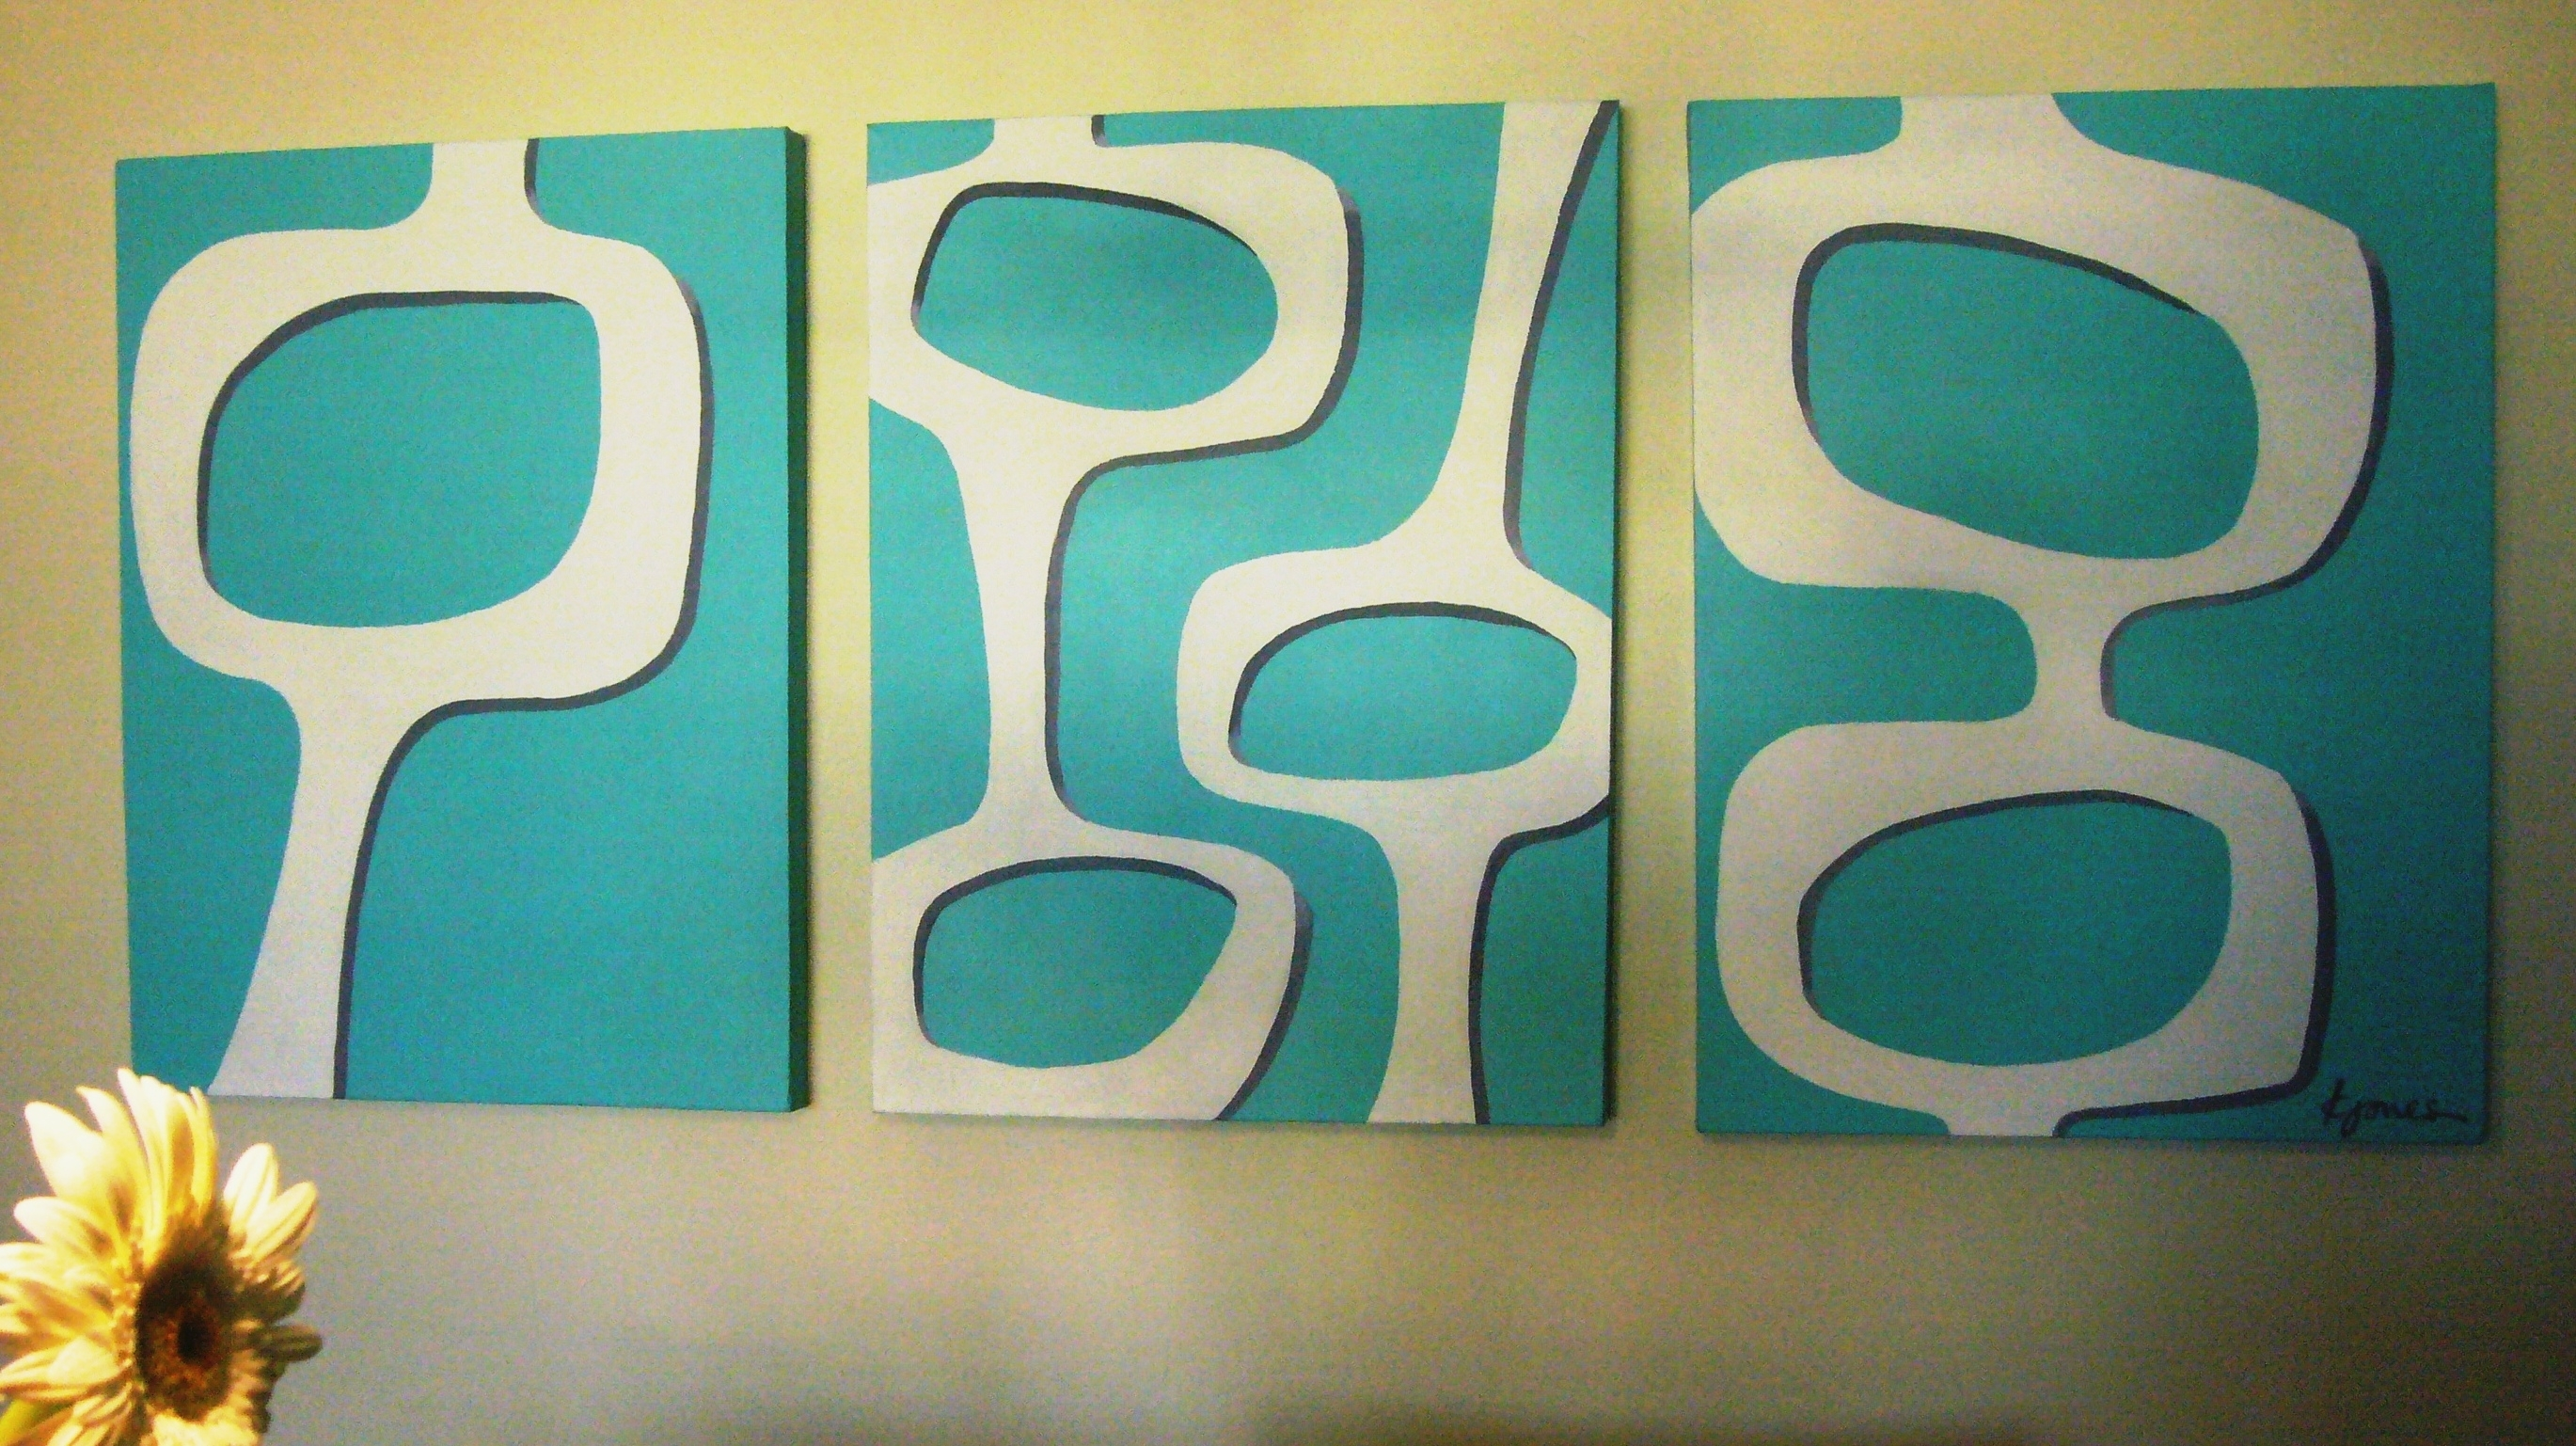 Easy Art | Pennello Lane Pertaining To Current Mid Century Wall Art (View 4 of 20)